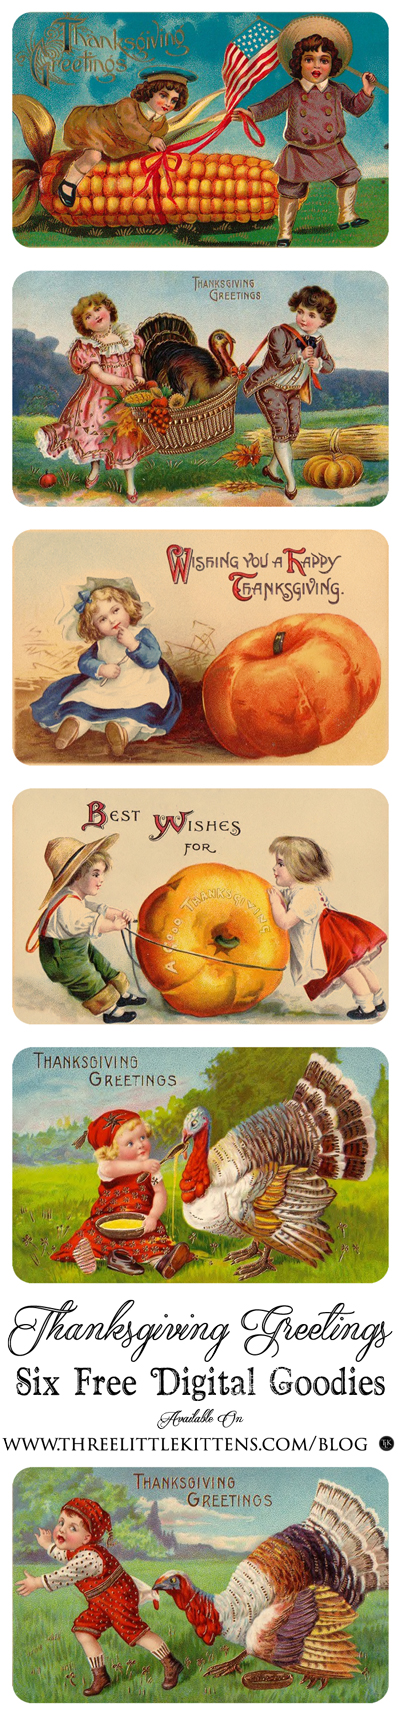 Thanksgiving Greetings - Digital Goodies on threelittlekittens.com/blog - Six different Thanksgiving stickers made from vintage ephemera